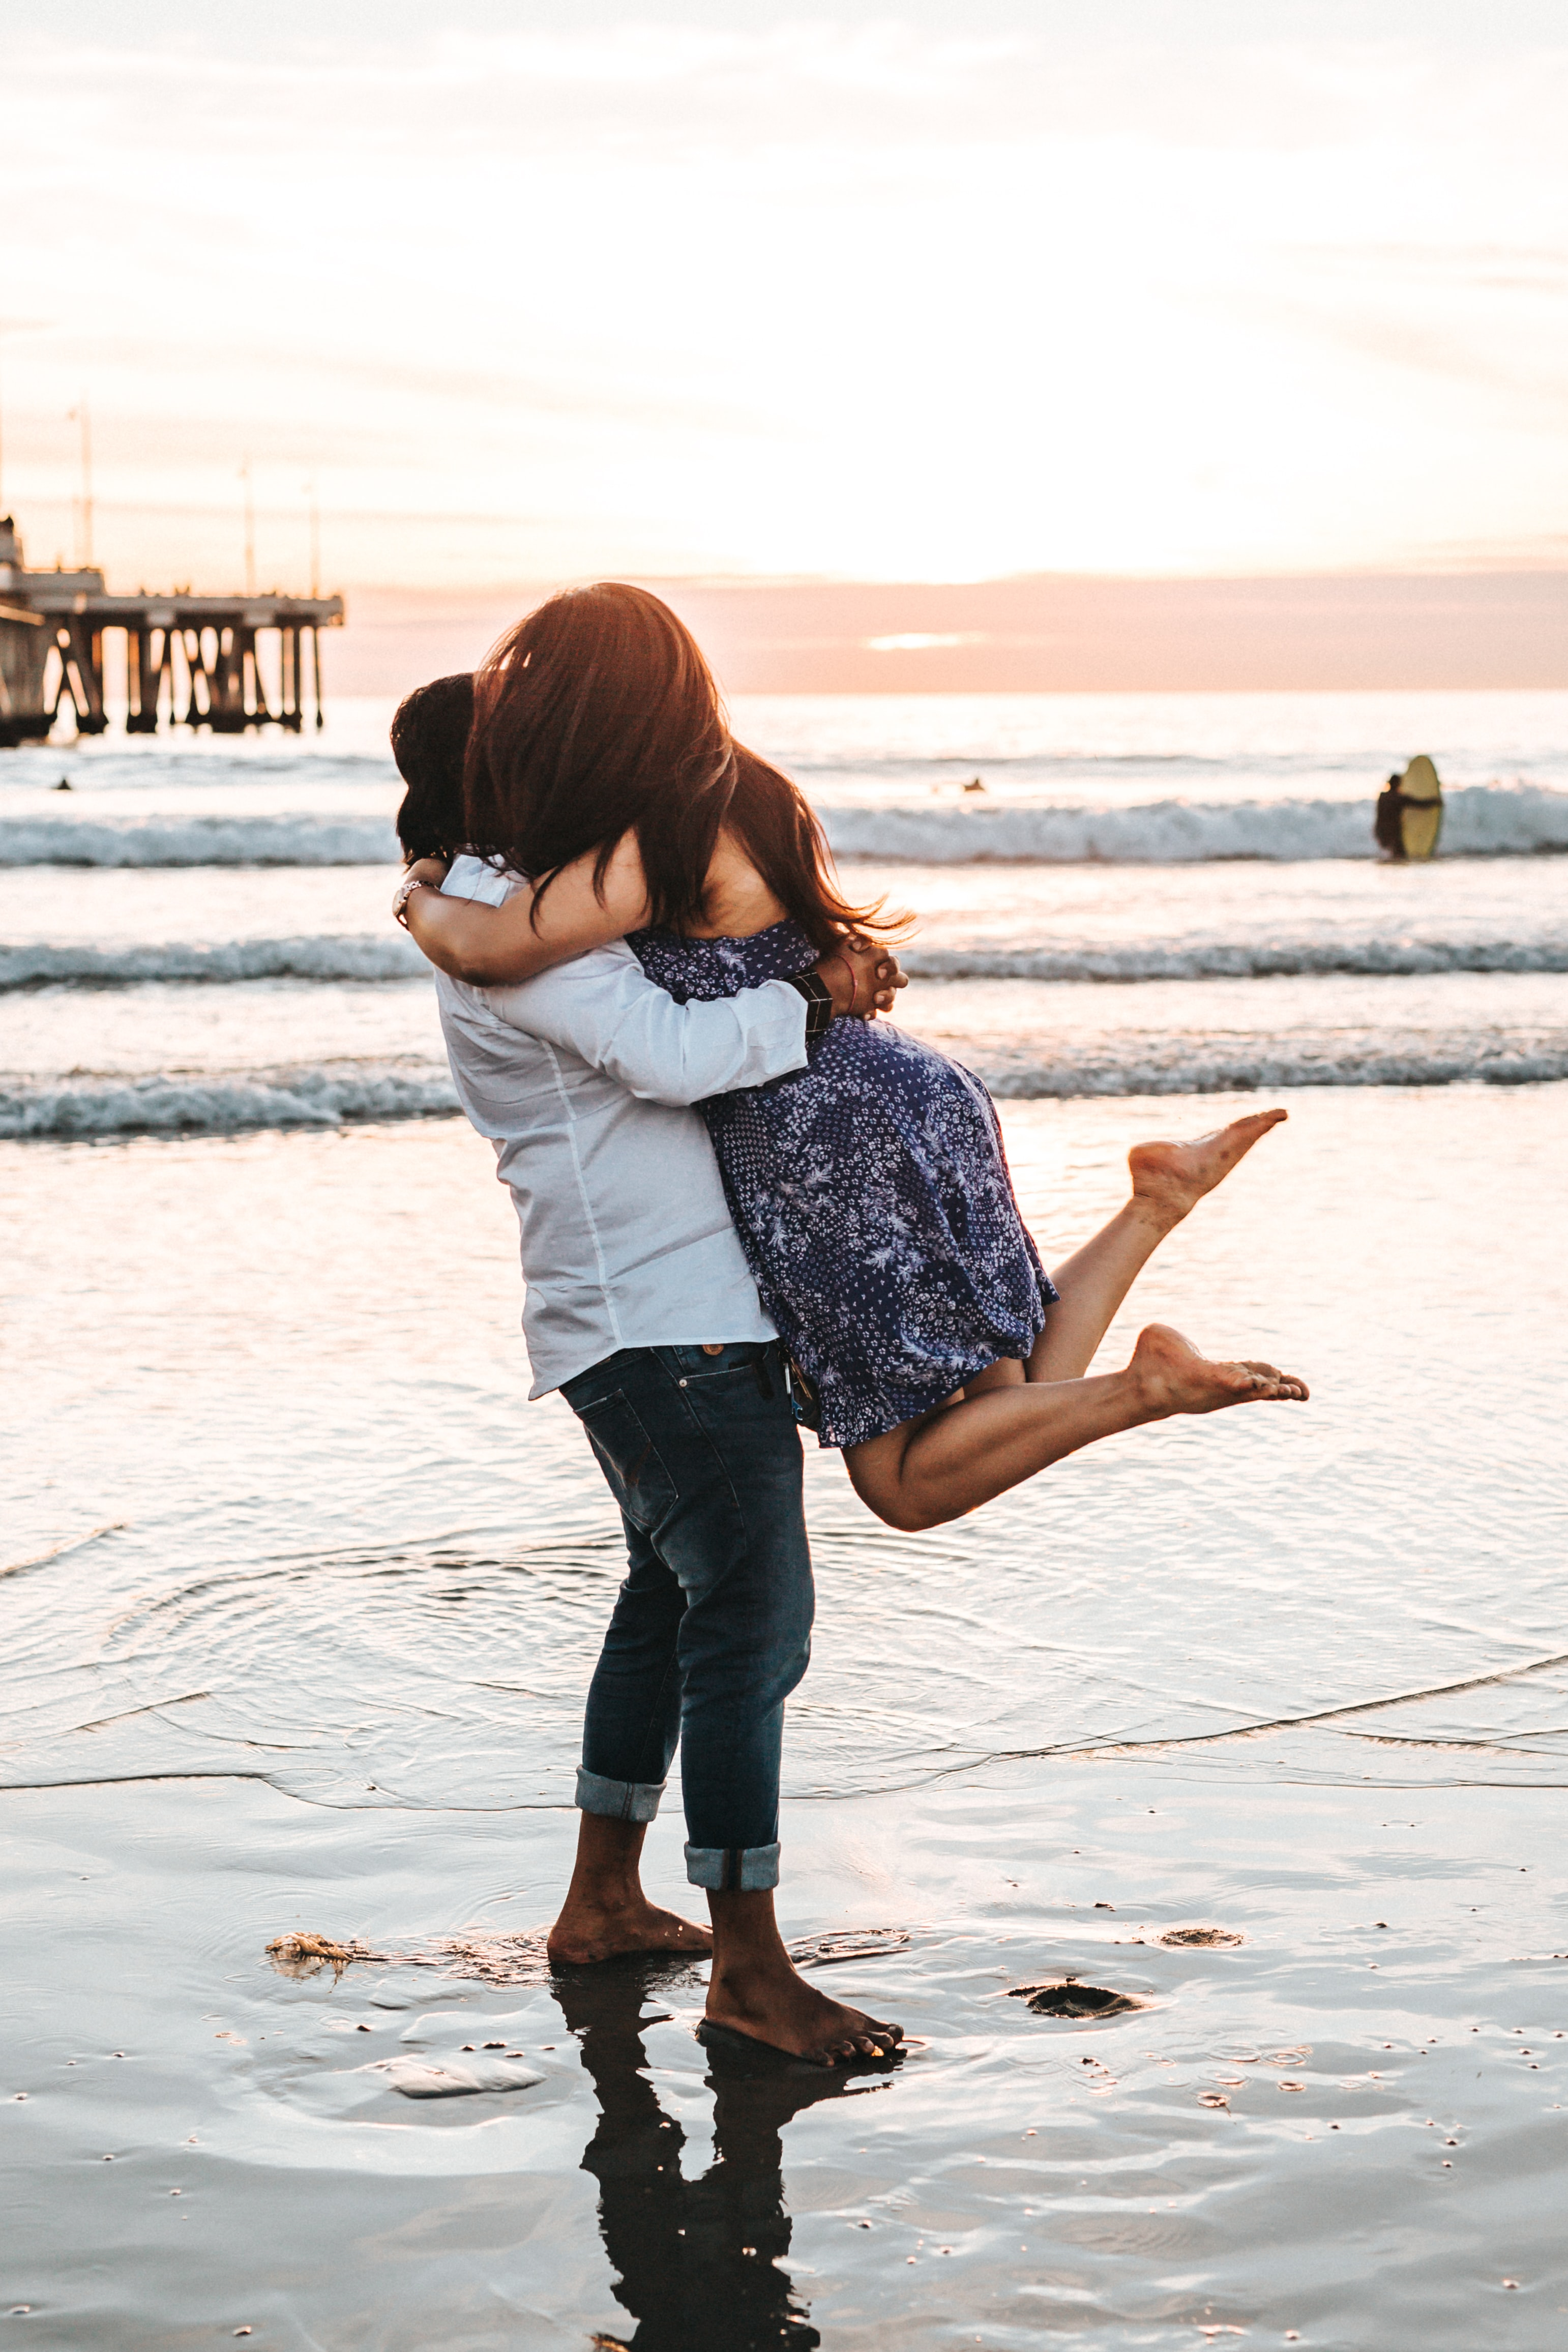 man hugging woman on seashore